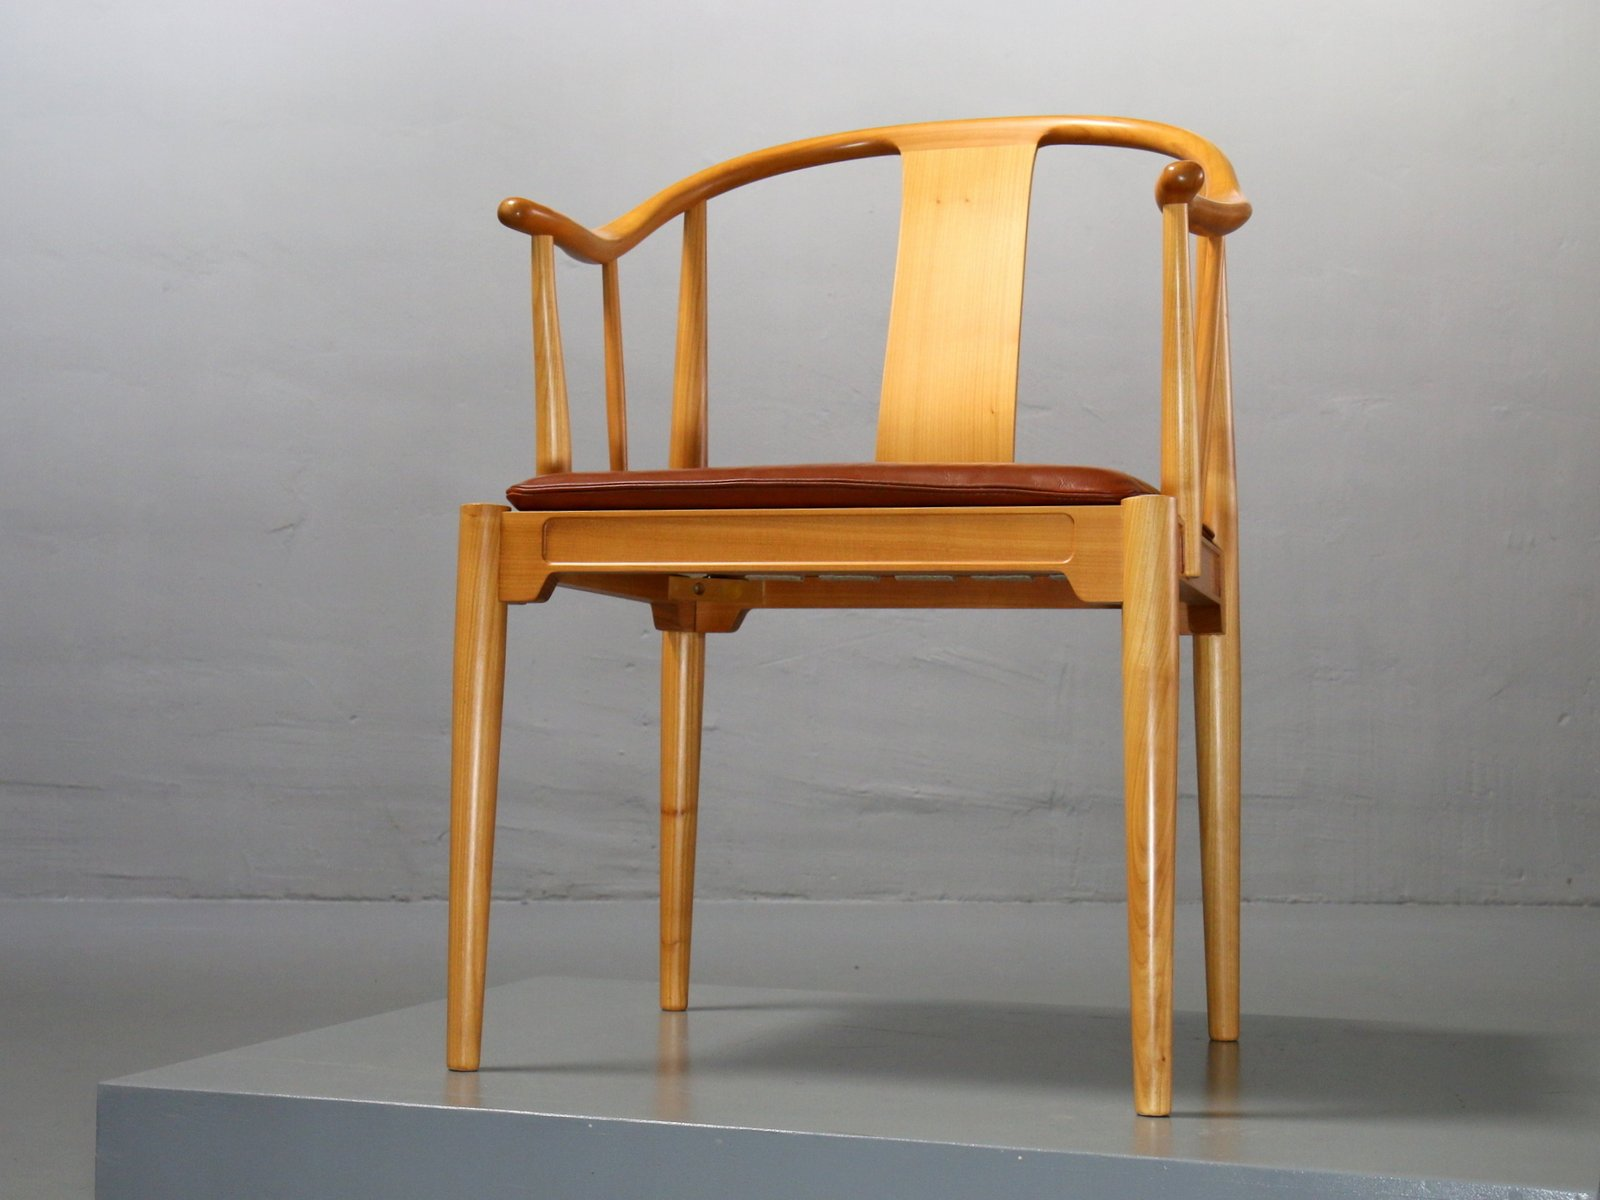 High Quality 4283 China Chair In Cherrywood By Hans J. Wegner For Fritz Hansen, 1989